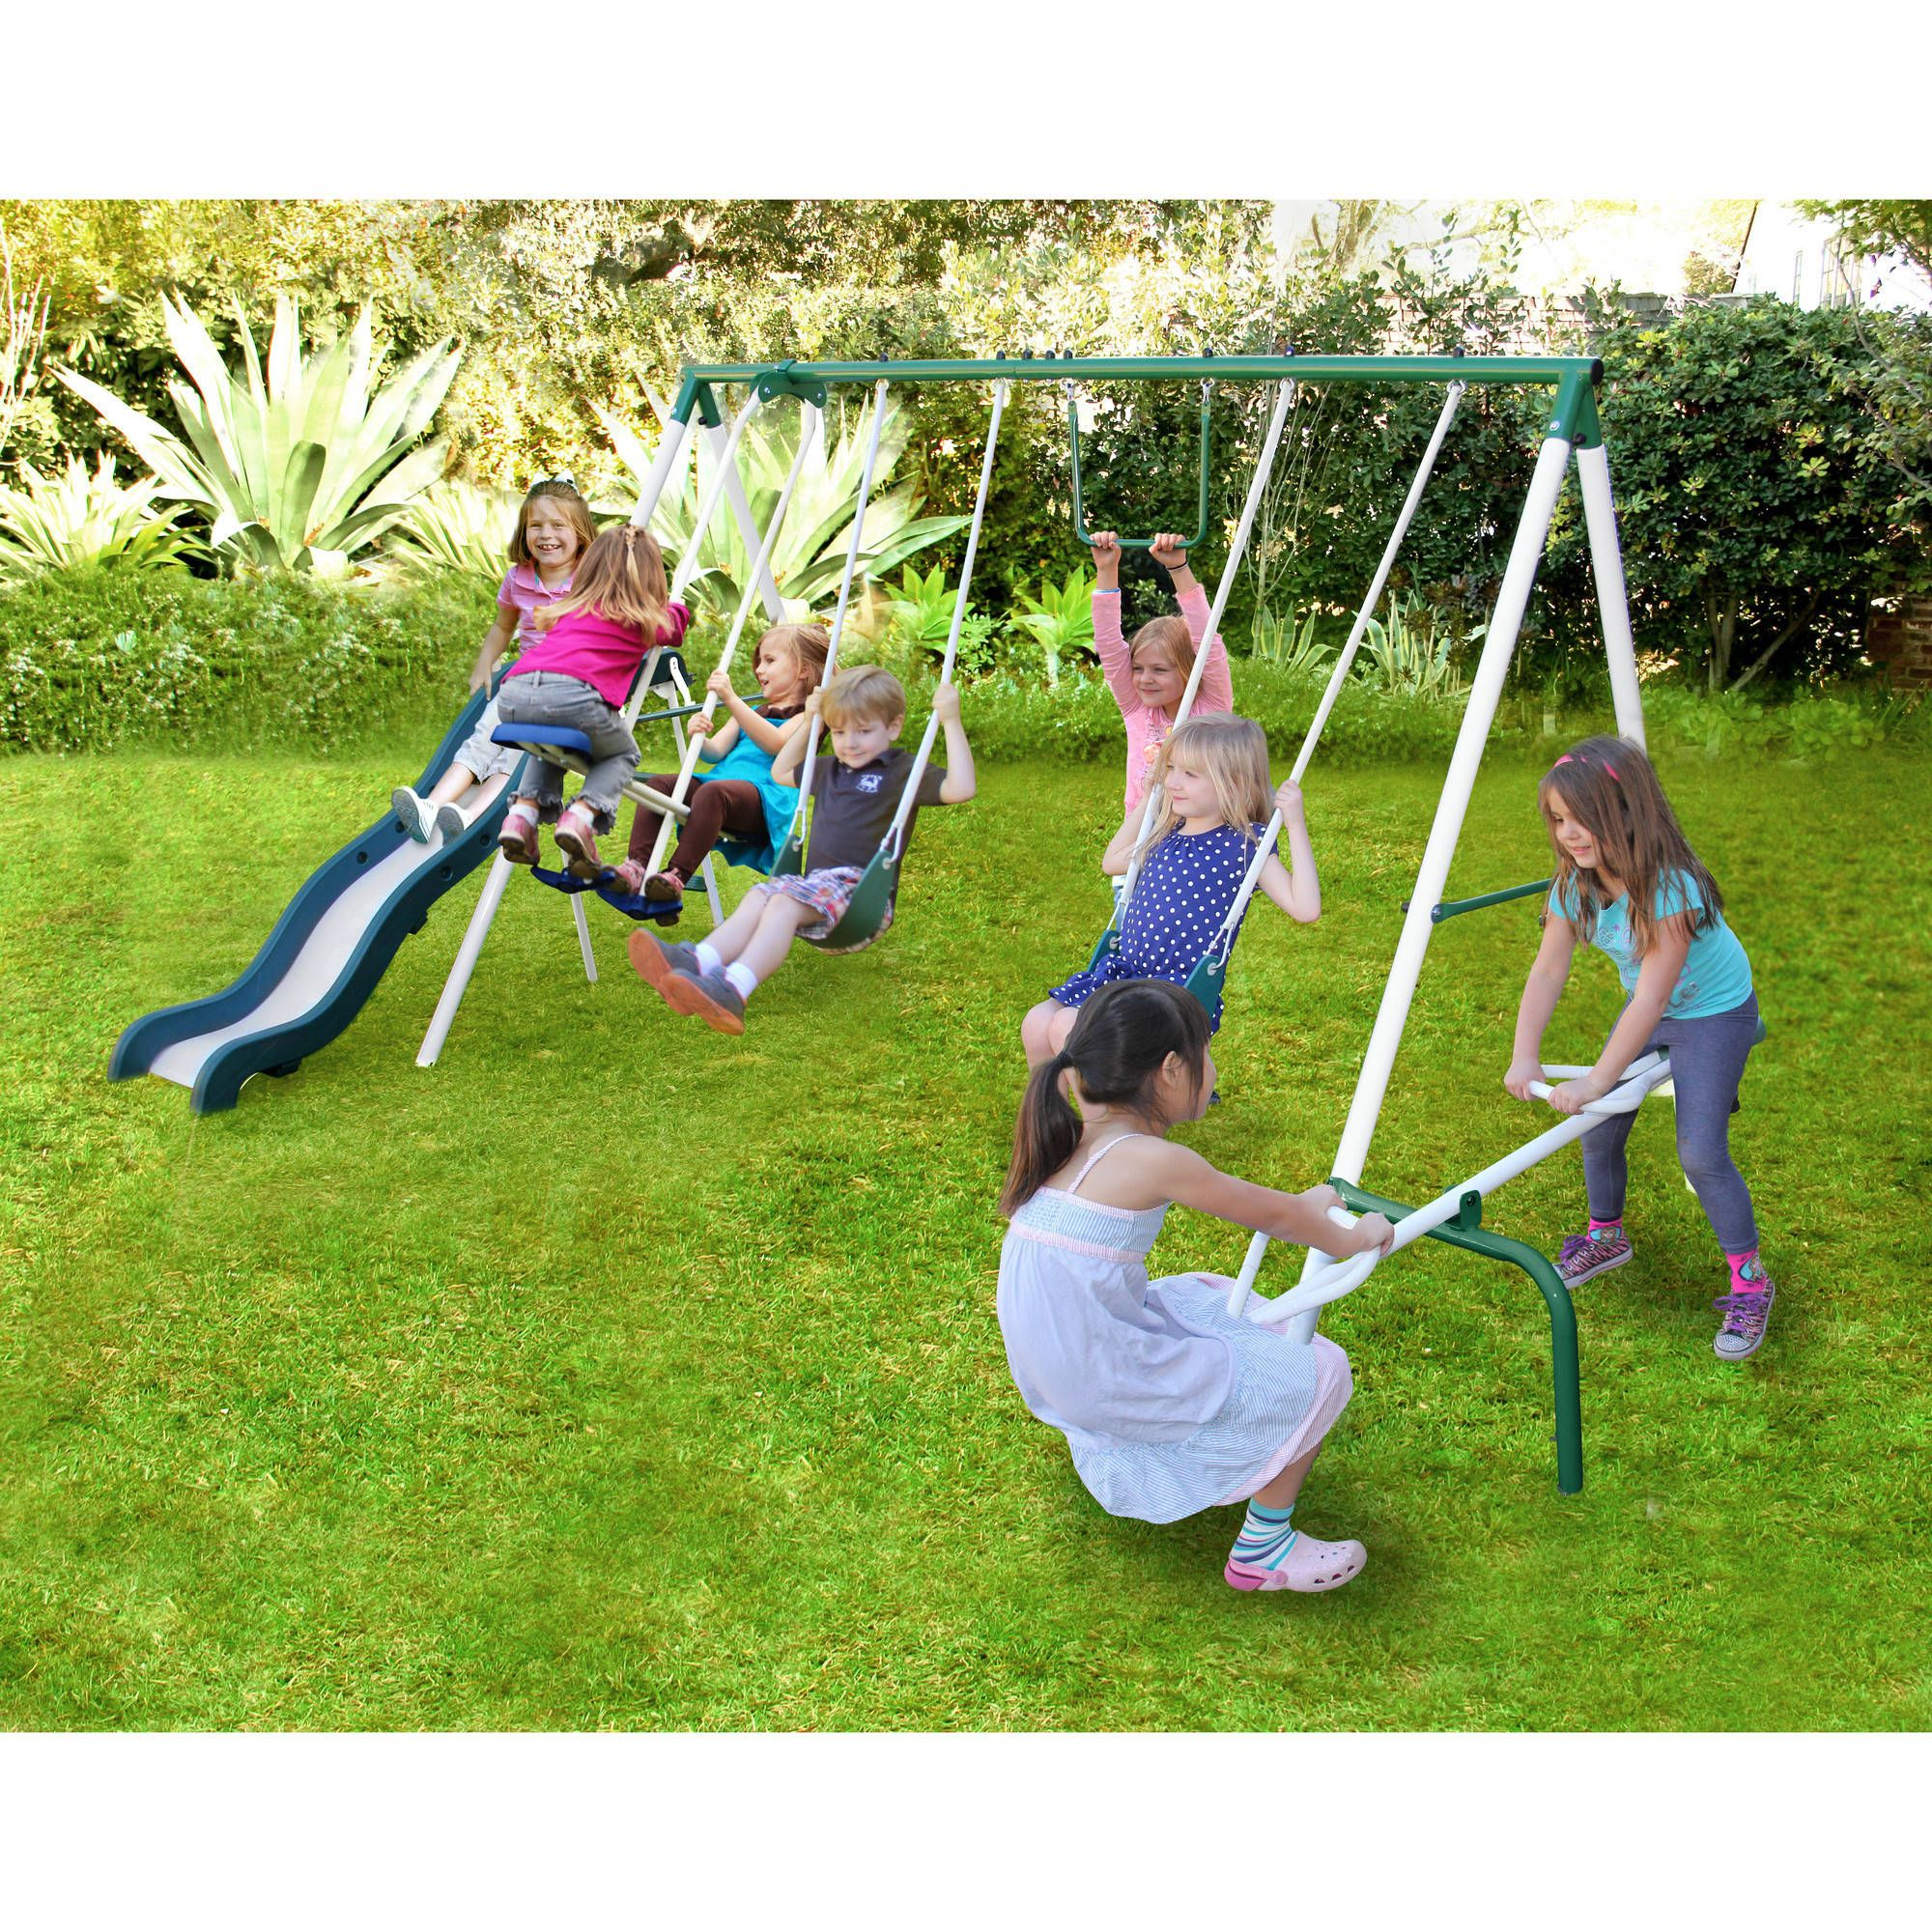 main johnlewis rsp swing toys tp com online pdp set lewis sets at metal single john buytp